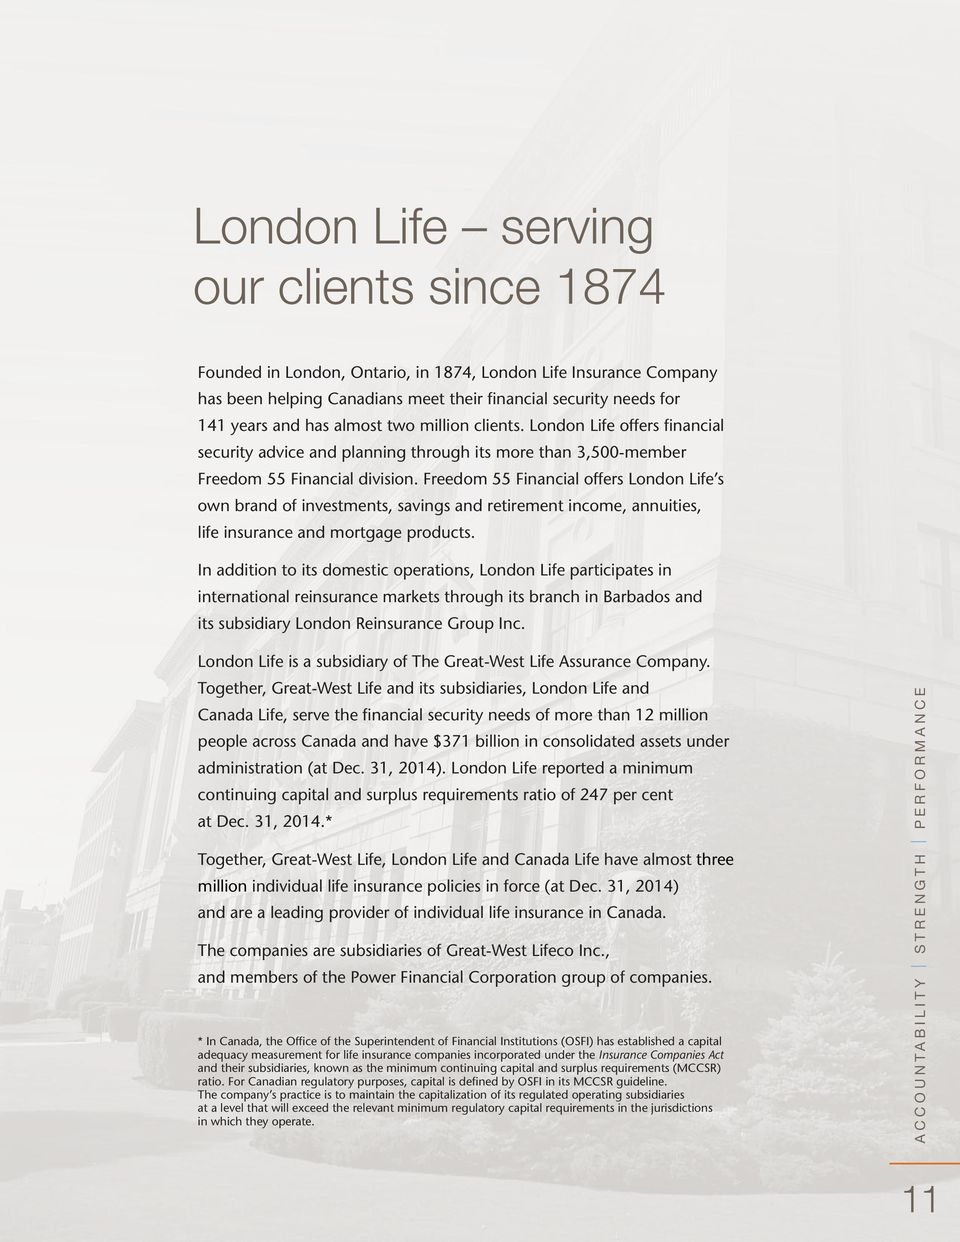 Freedom 55 Financial offers London Life s own brand of investments, savings and retirement income, annuities, life insurance and mortgage products.